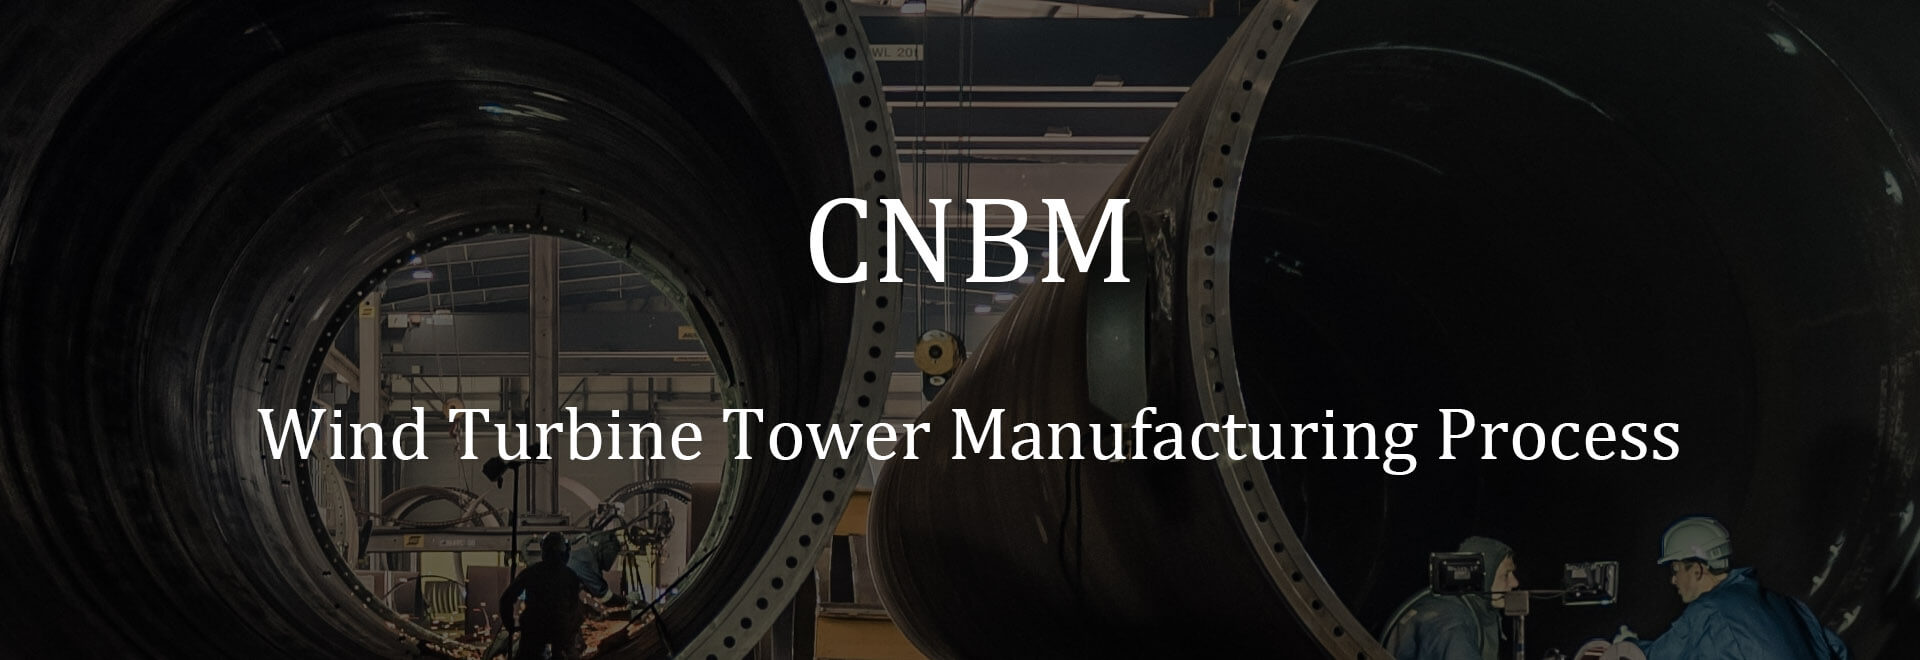 complete wind turbine tower manufacturing guidance